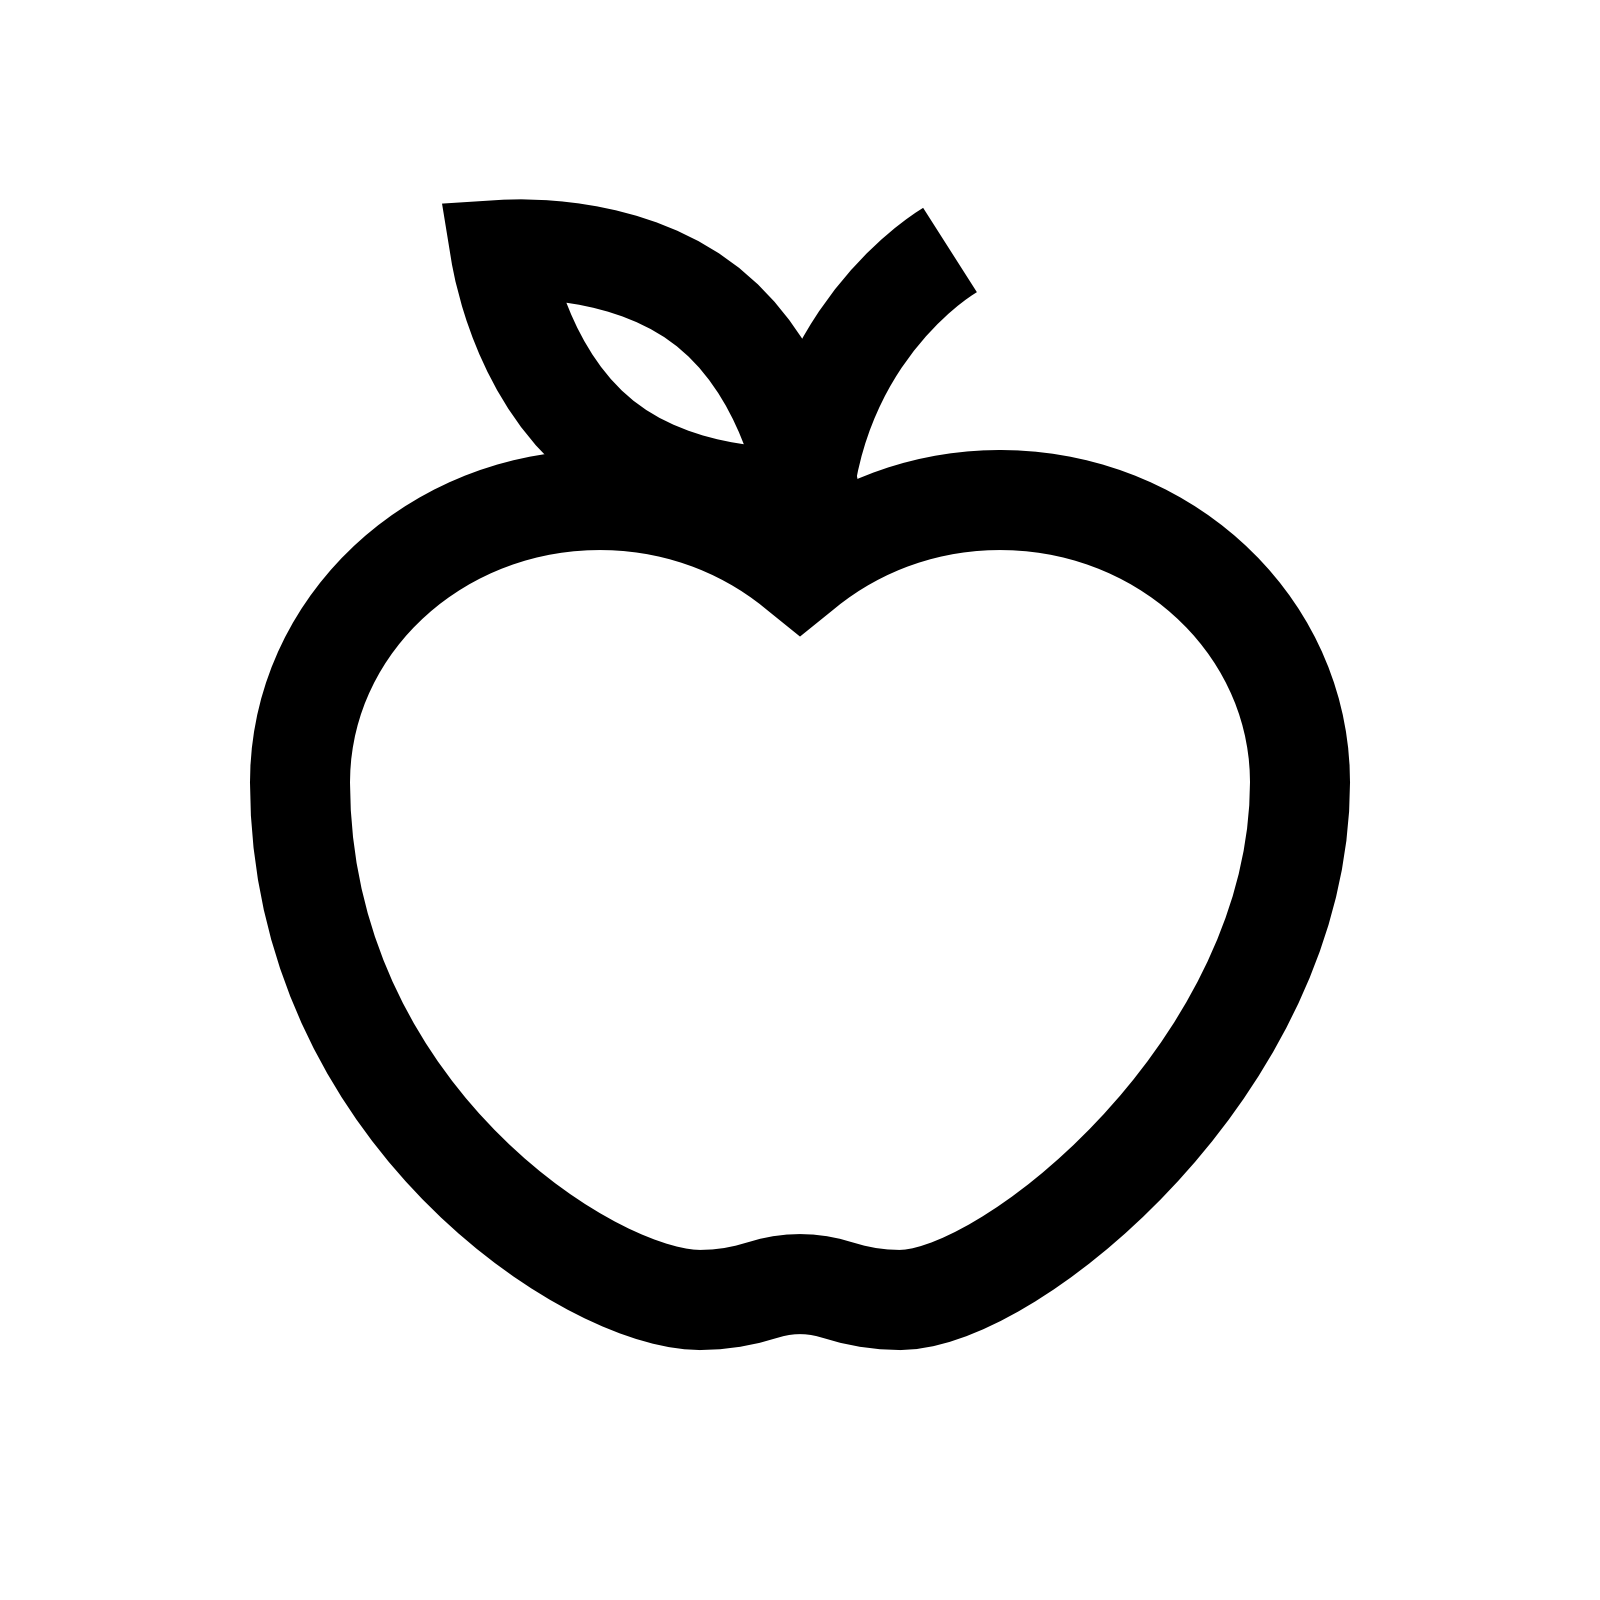 Apple halves clipart banner North Central Companies - Fruits & Nuts banner